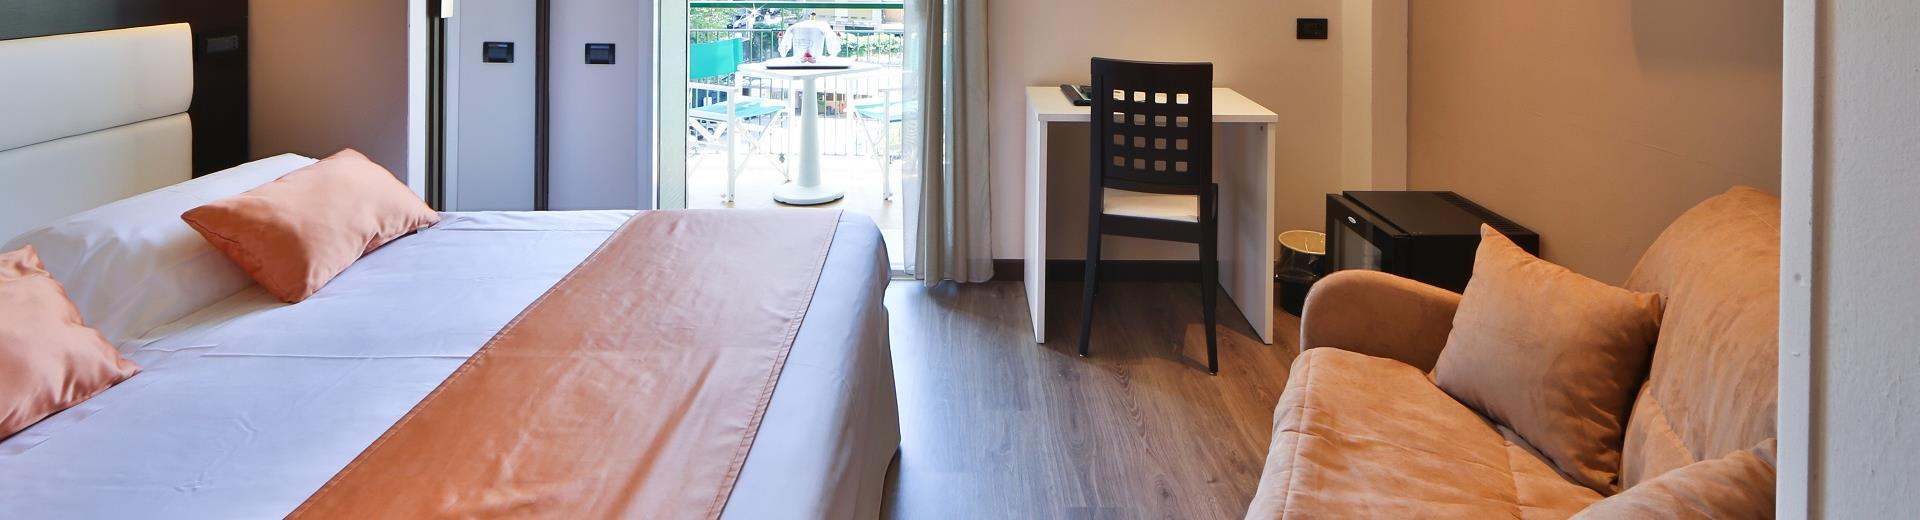 Check out the garden view rooms at our hotel in Santa Margherita Ligure